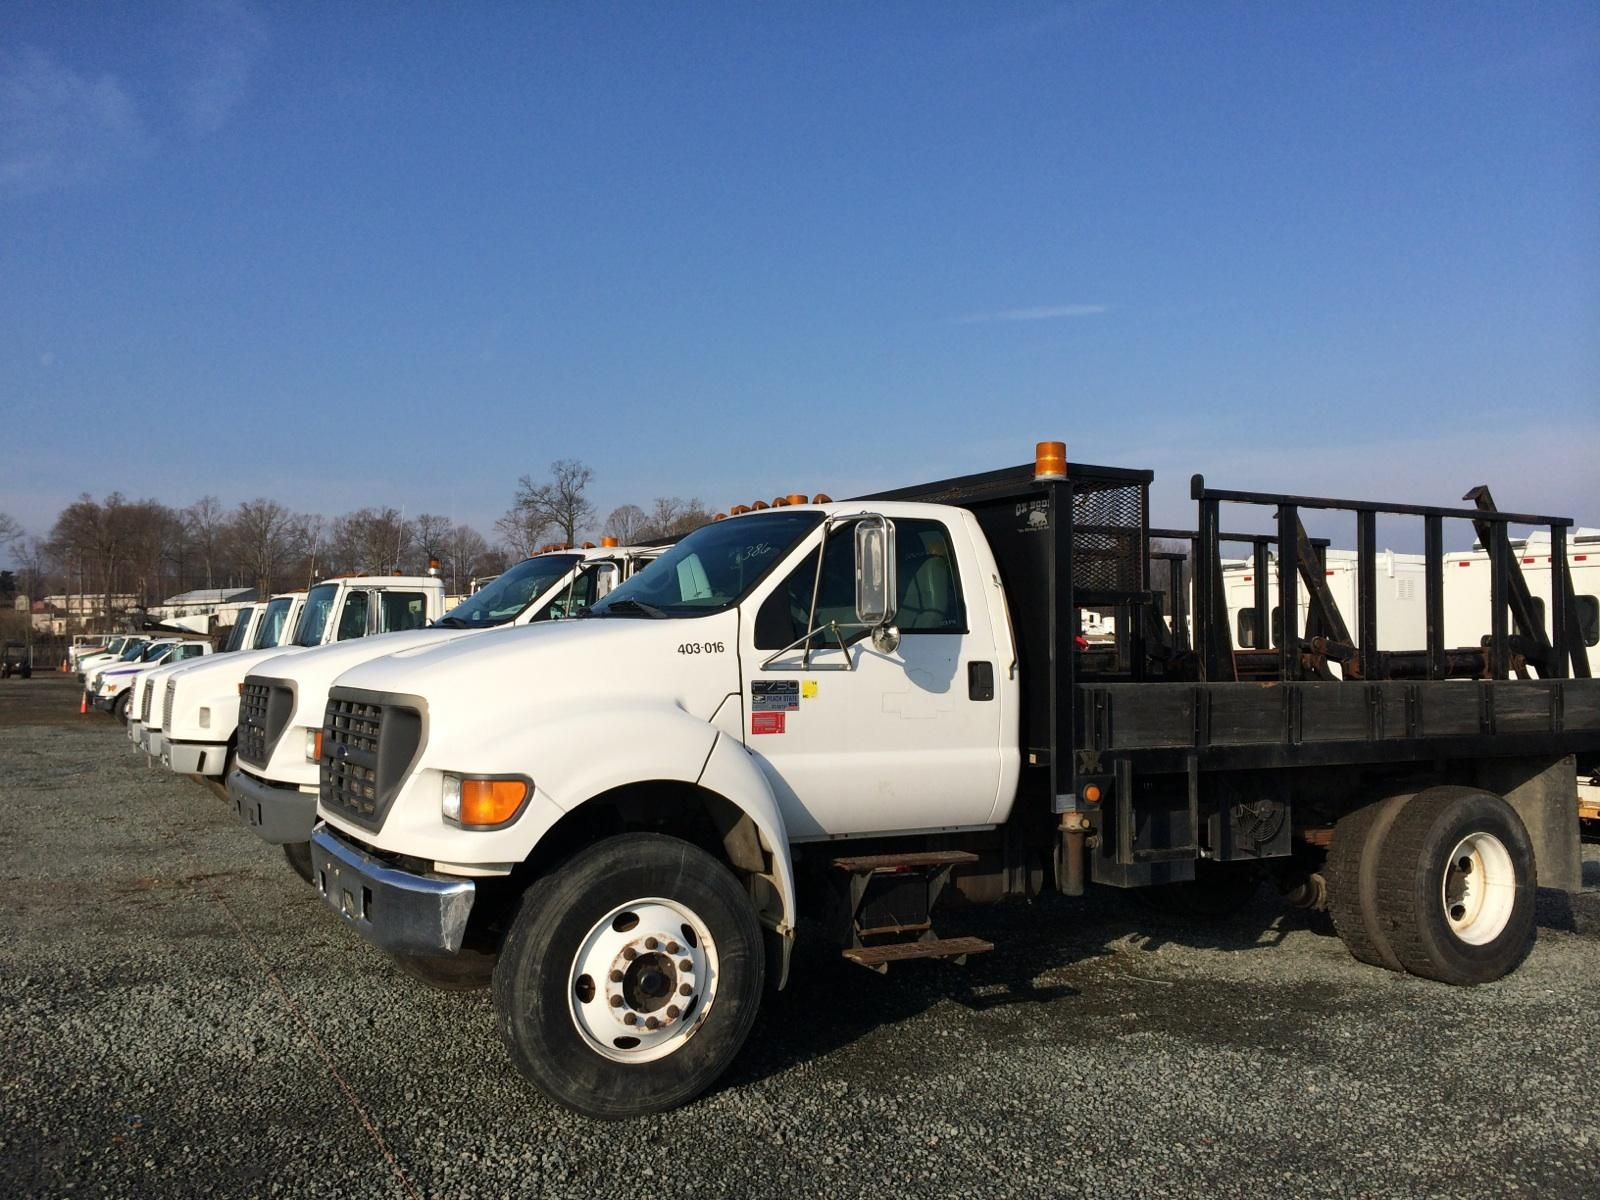 Flatbed Truck For Sale >> Flatbed Trucks For Sale At Public Auction In Concord Nc 2